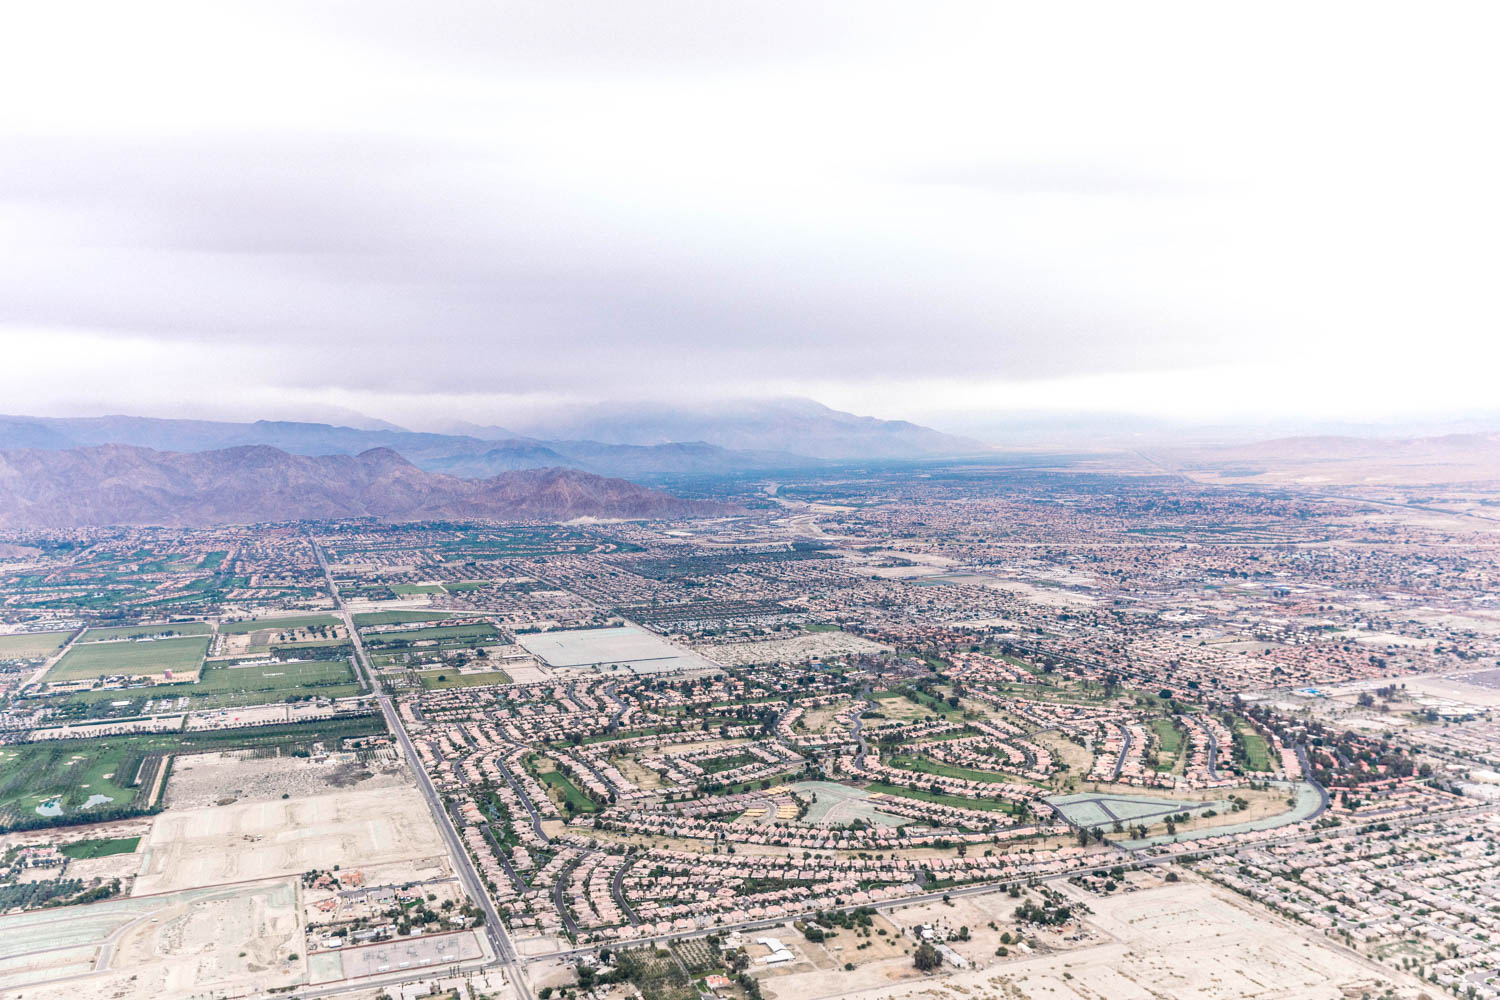 palm_springs_hot_air_balloon_proposal_02.jpg